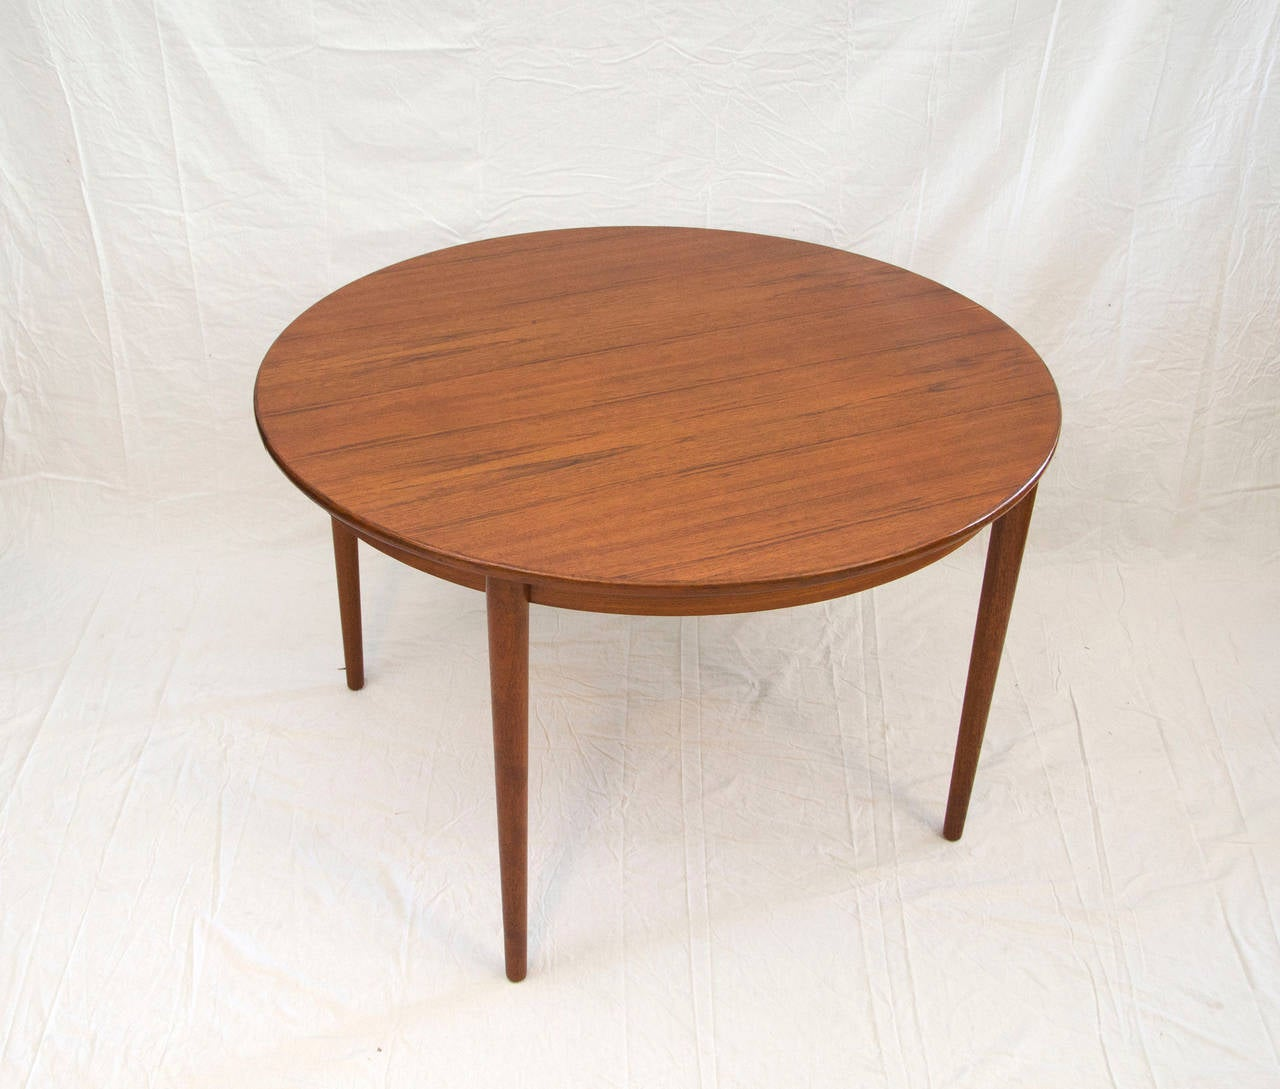 Danish round teak dining table with two leaves by moreddi for Dining room tables with leaves